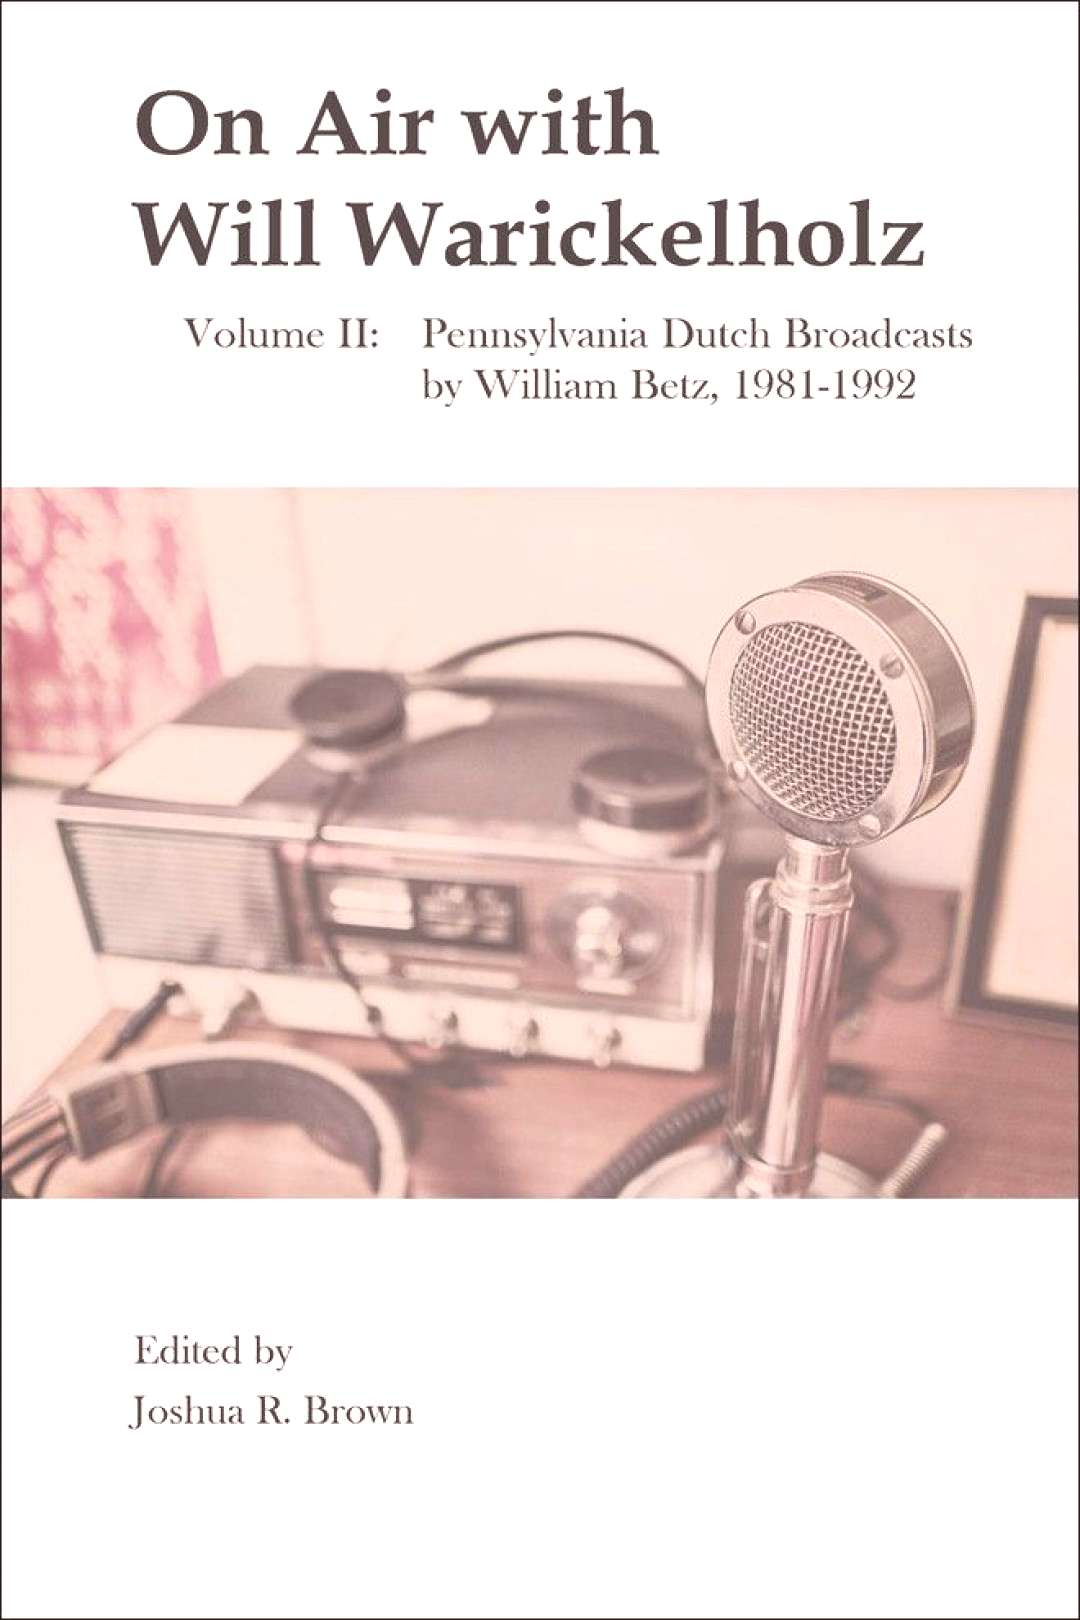 On Air with Will Warickelholz, Volume II: Pennsylvania Dutch Broadcasts by William Betz, 1981-1992: